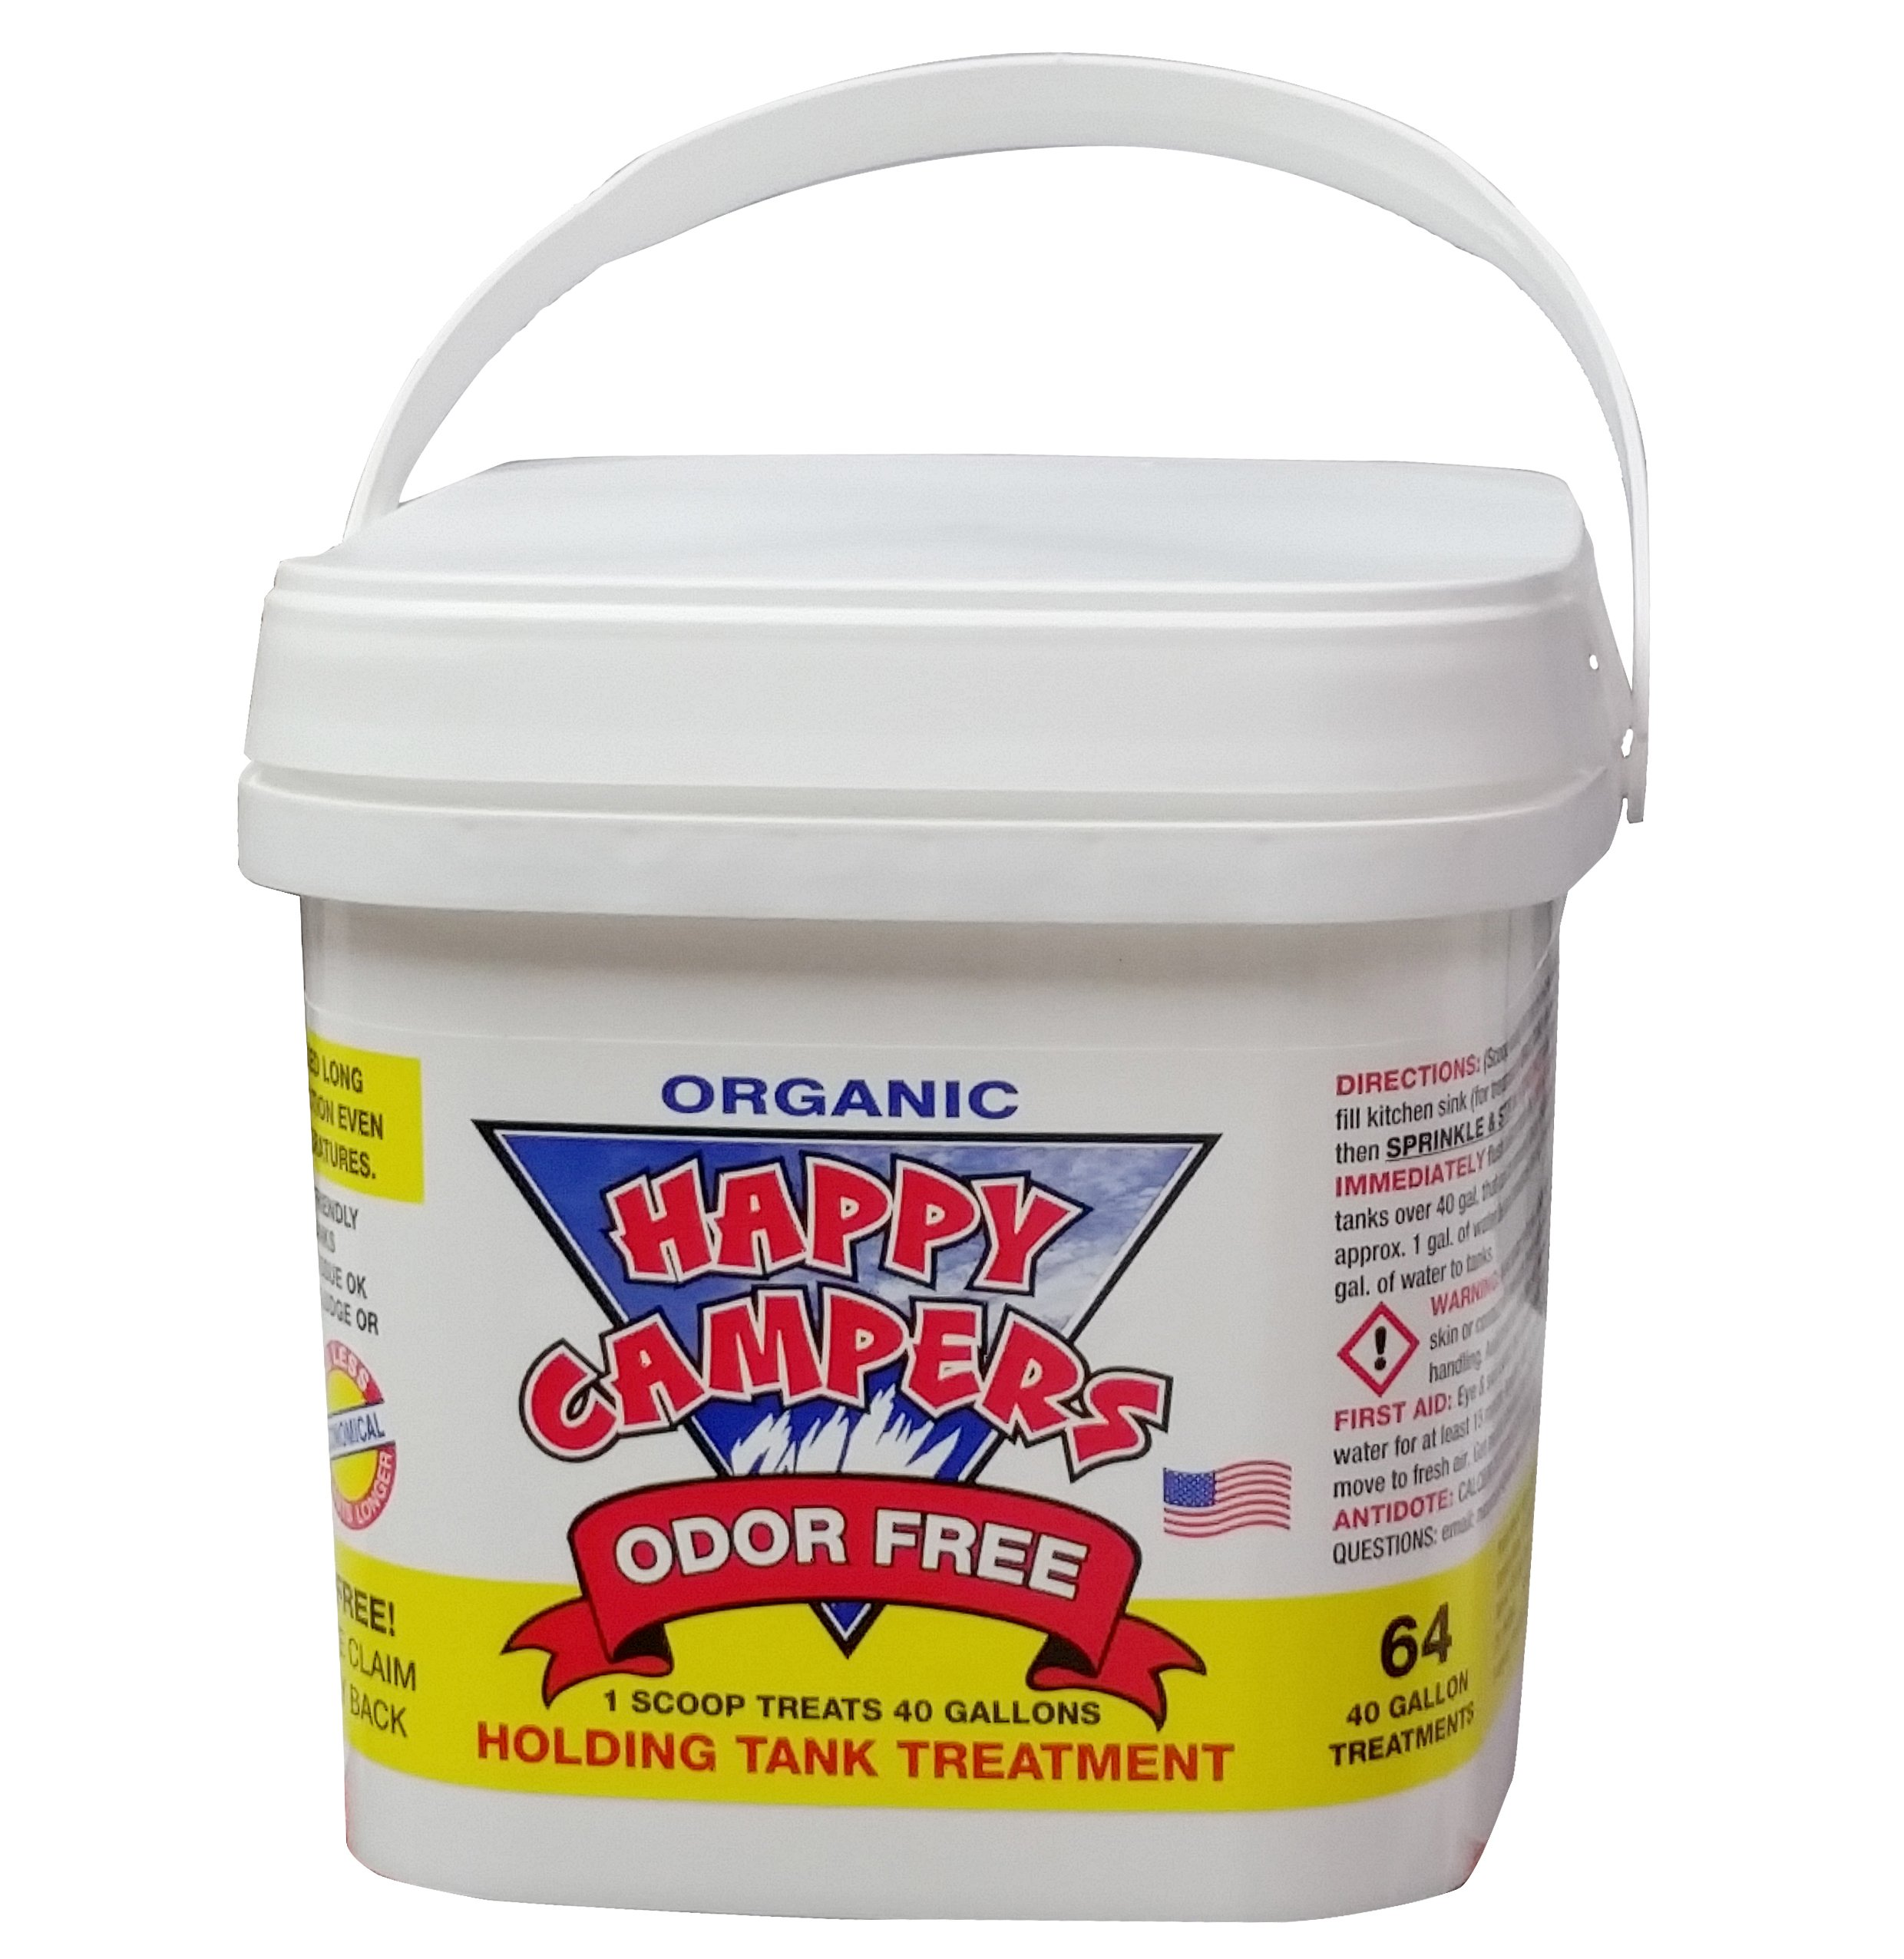 Happy Campers Organic RV Holding Tank Treatment - 64 treatments by Happy Campers